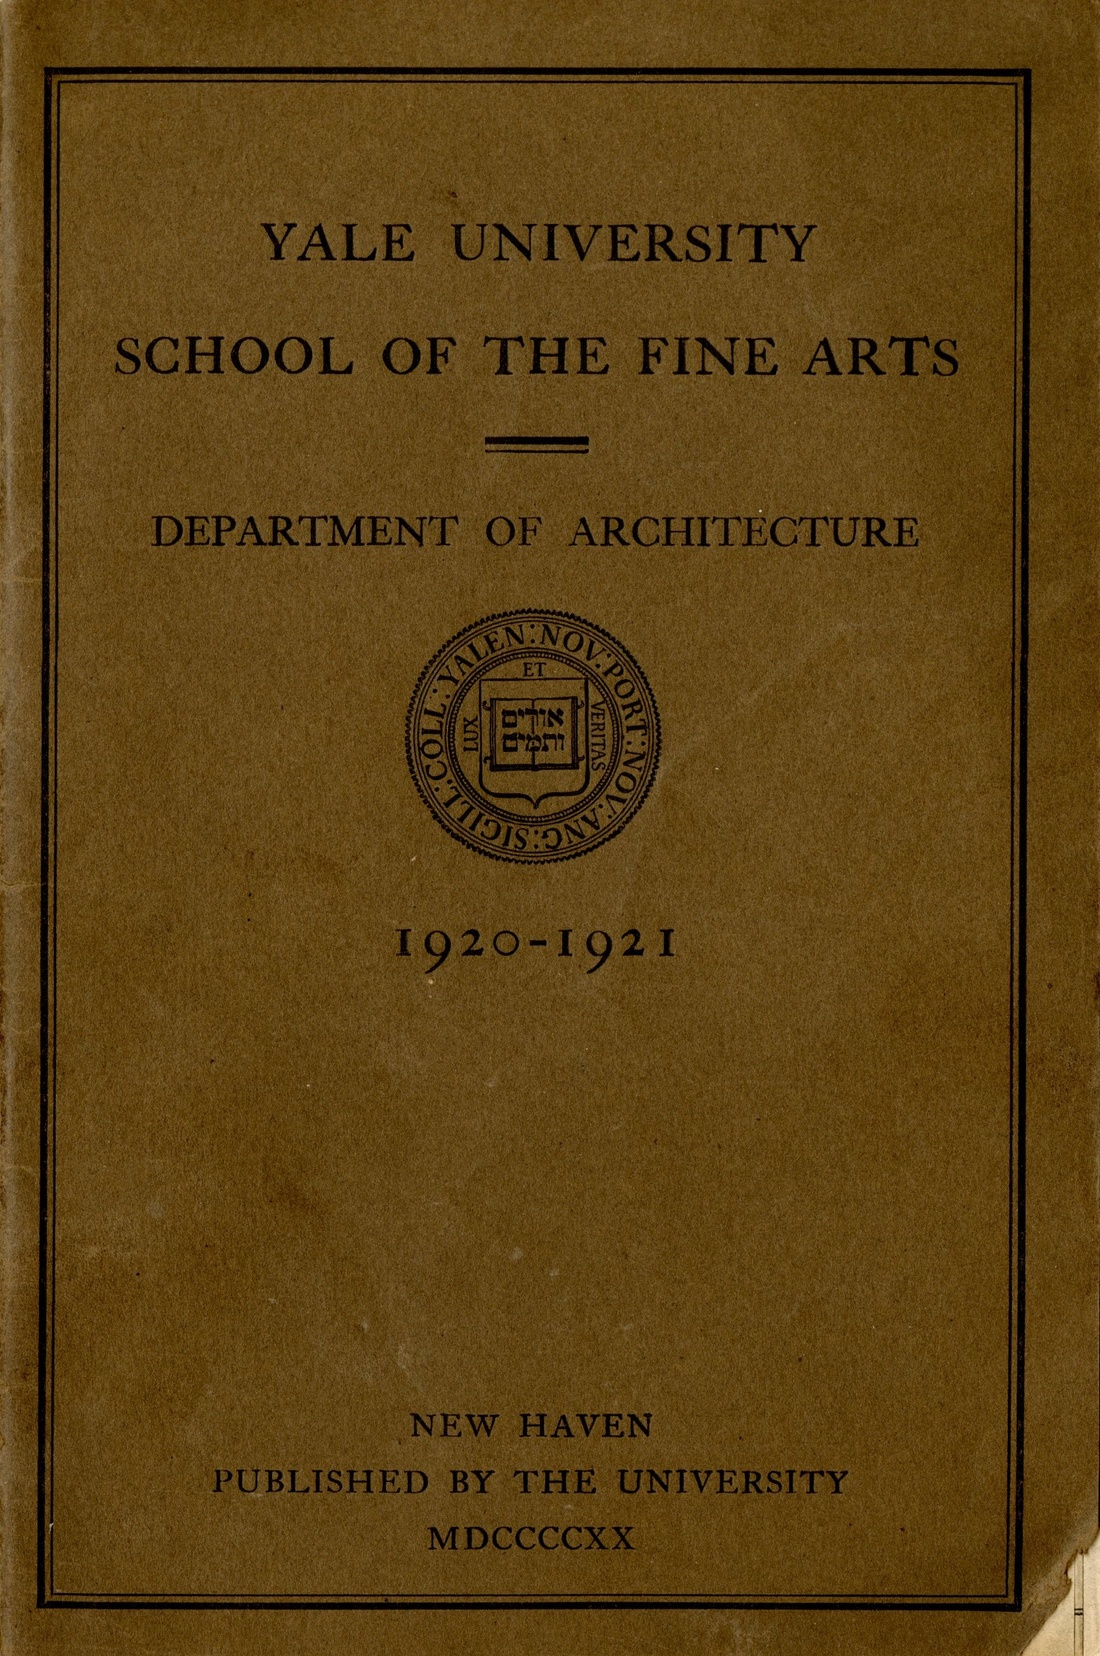 Cover of School Bulletin from 1920